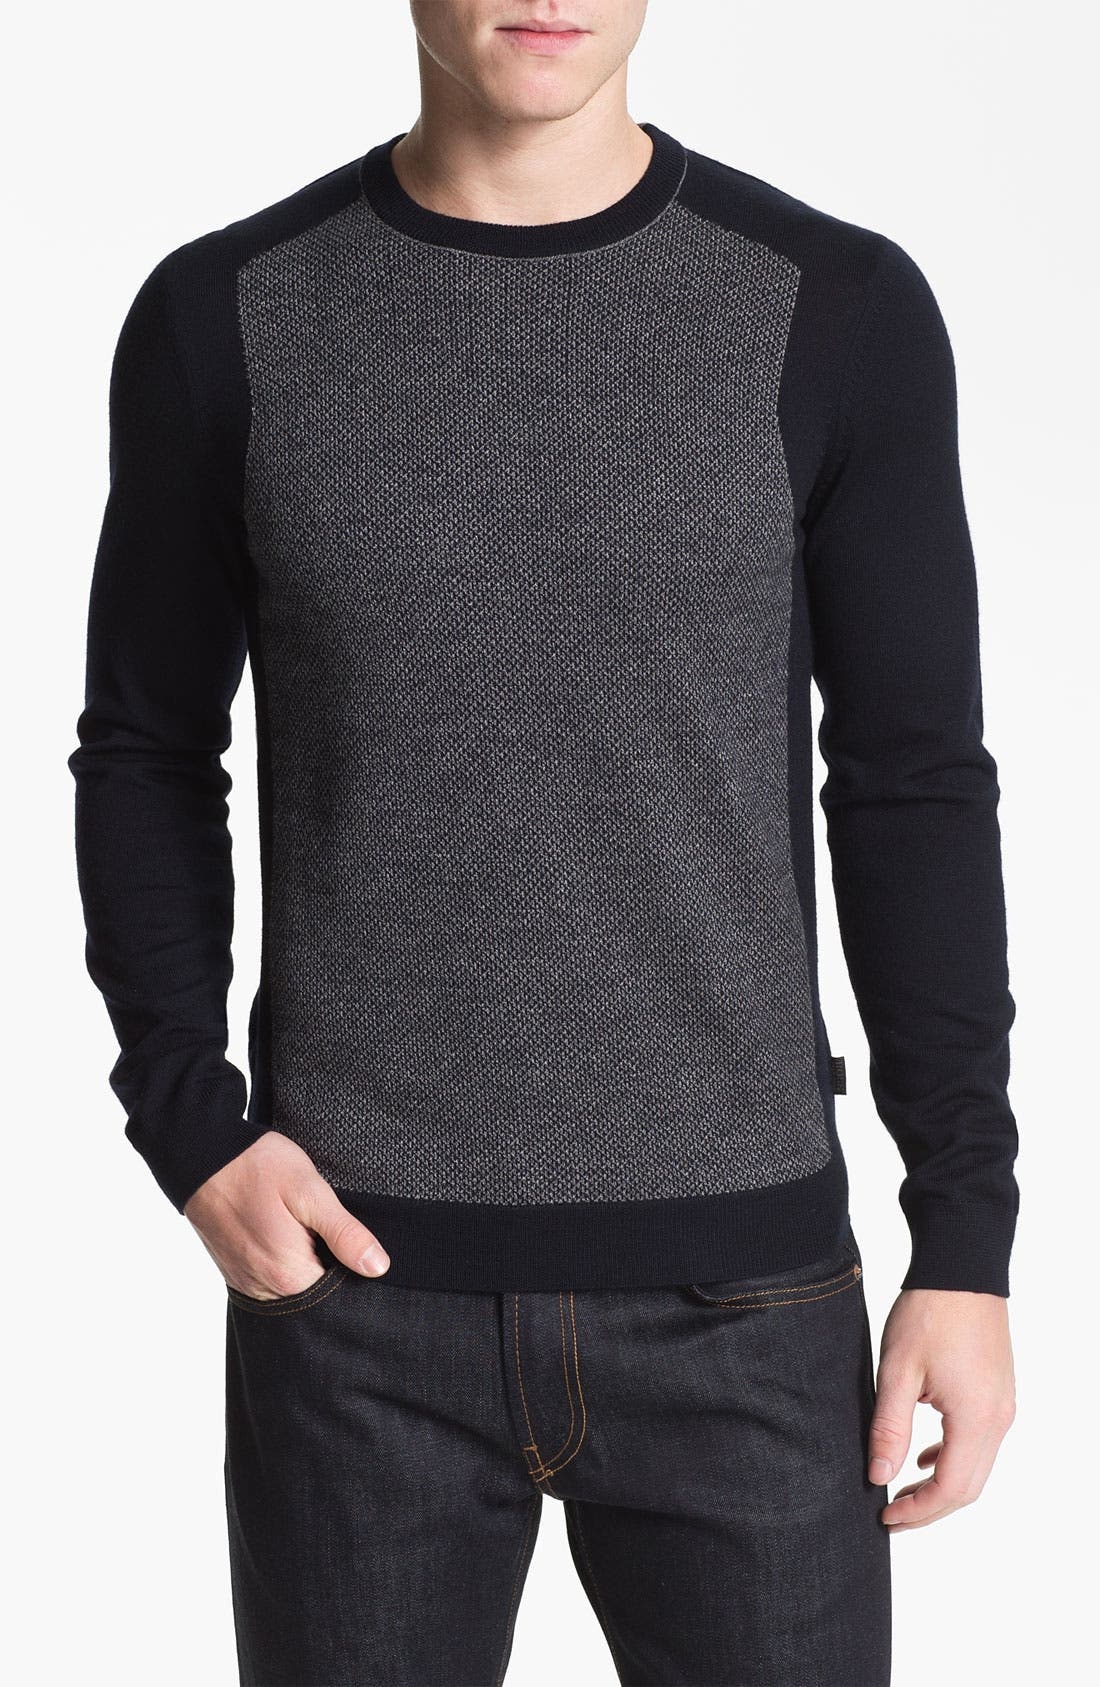 Main Image - BOSS Black 'Herschel' Wool Crewneck Sweater